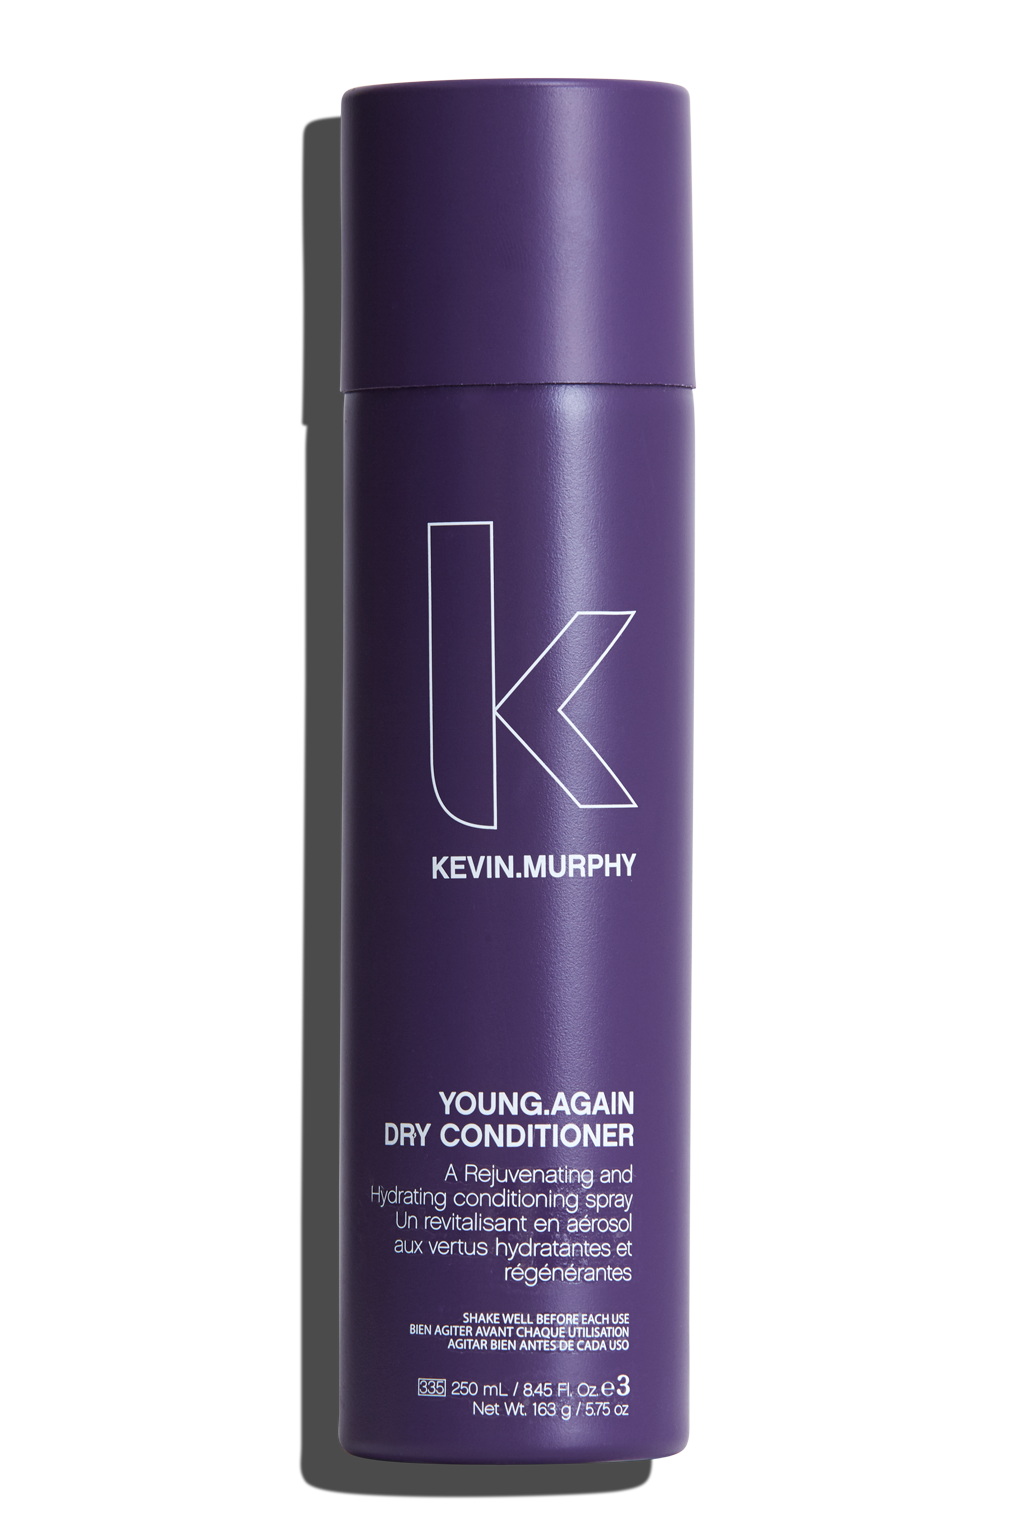 Kevin.Murphy YOUNG.AGAIN DRY CONDITIONER 250ml